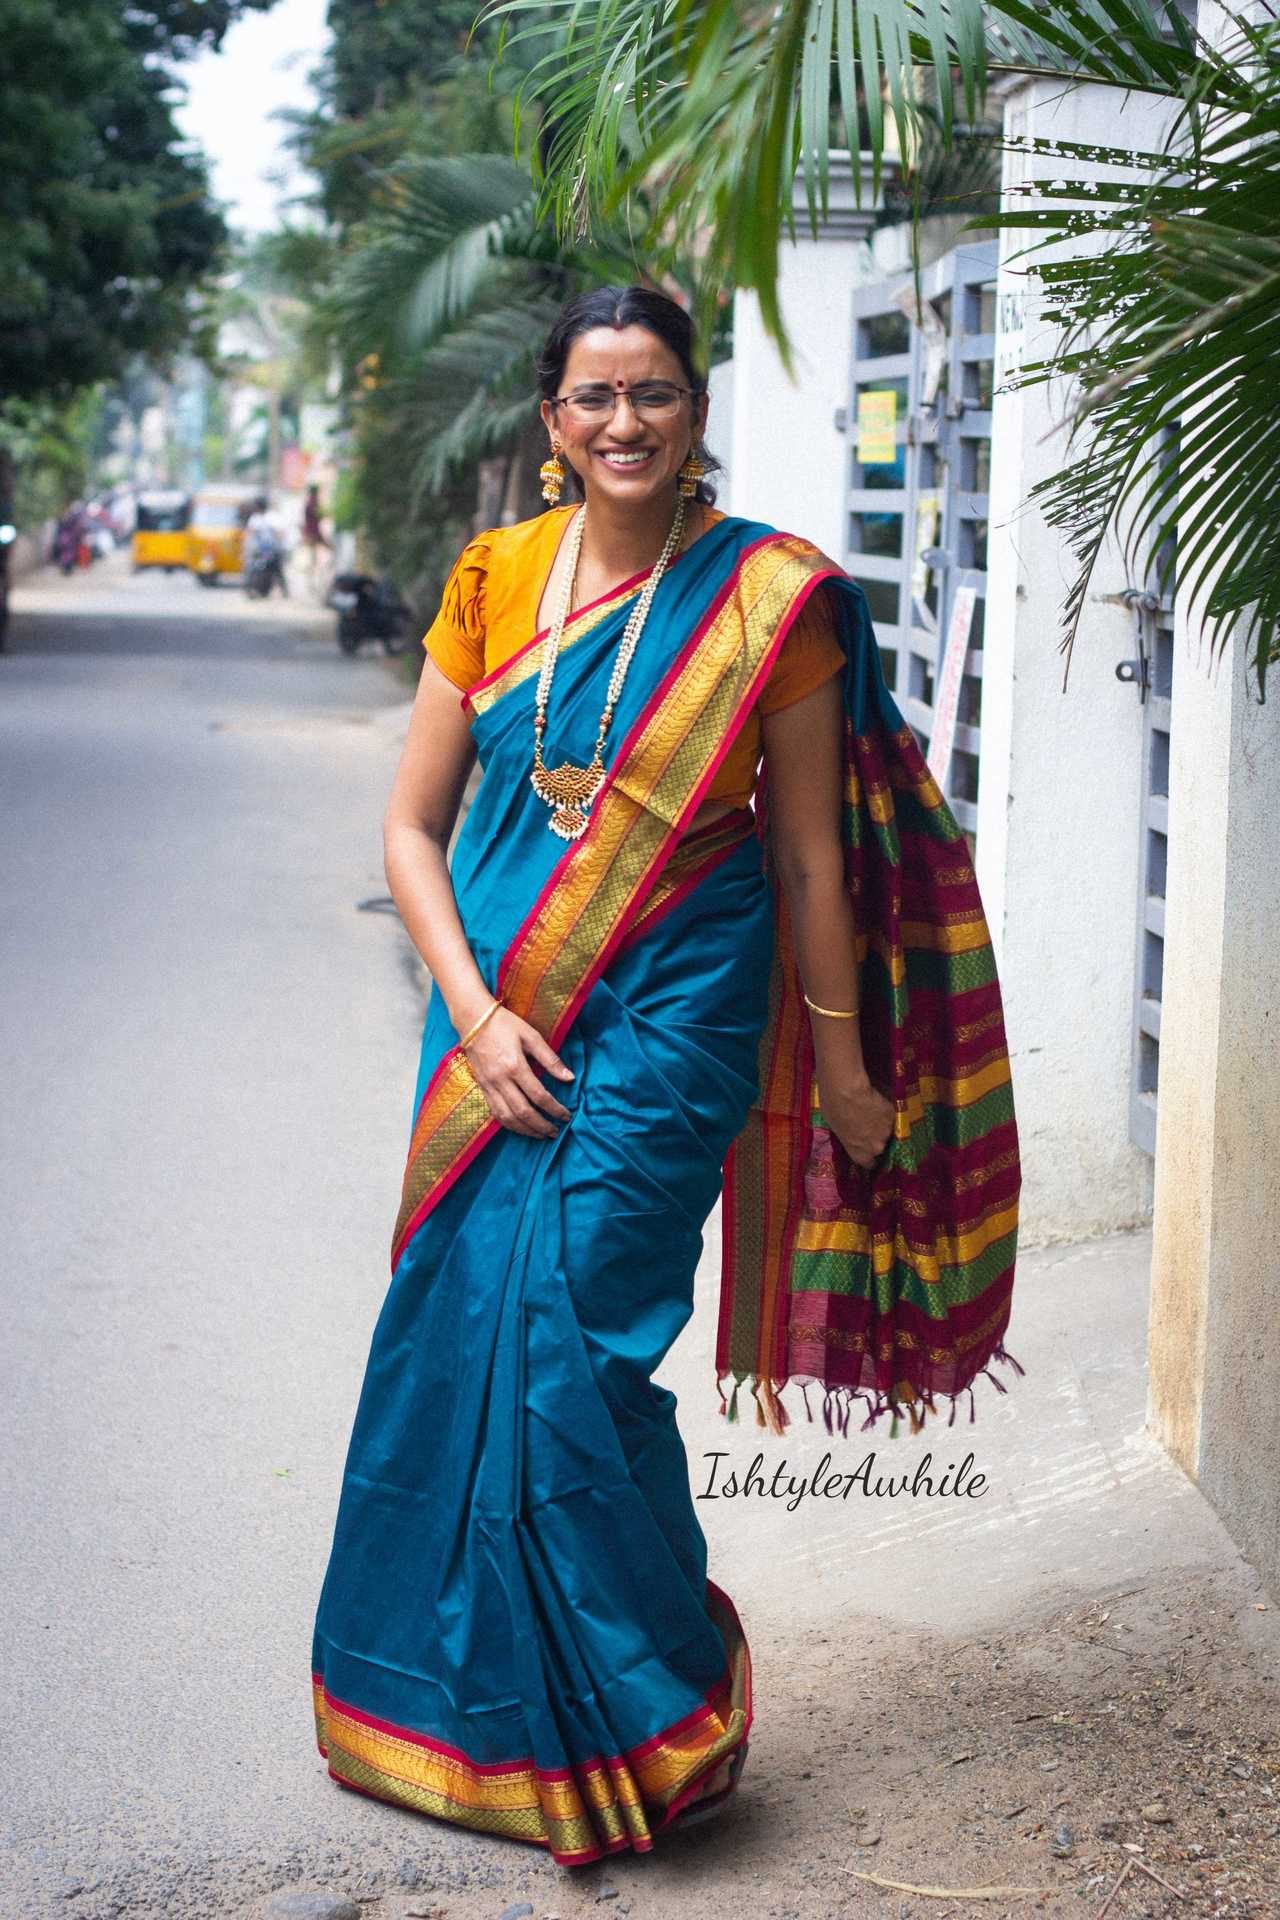 IshtyleAwhile - A Chennai based Indian Fashion Blog - styling tips for a silk saree south indian